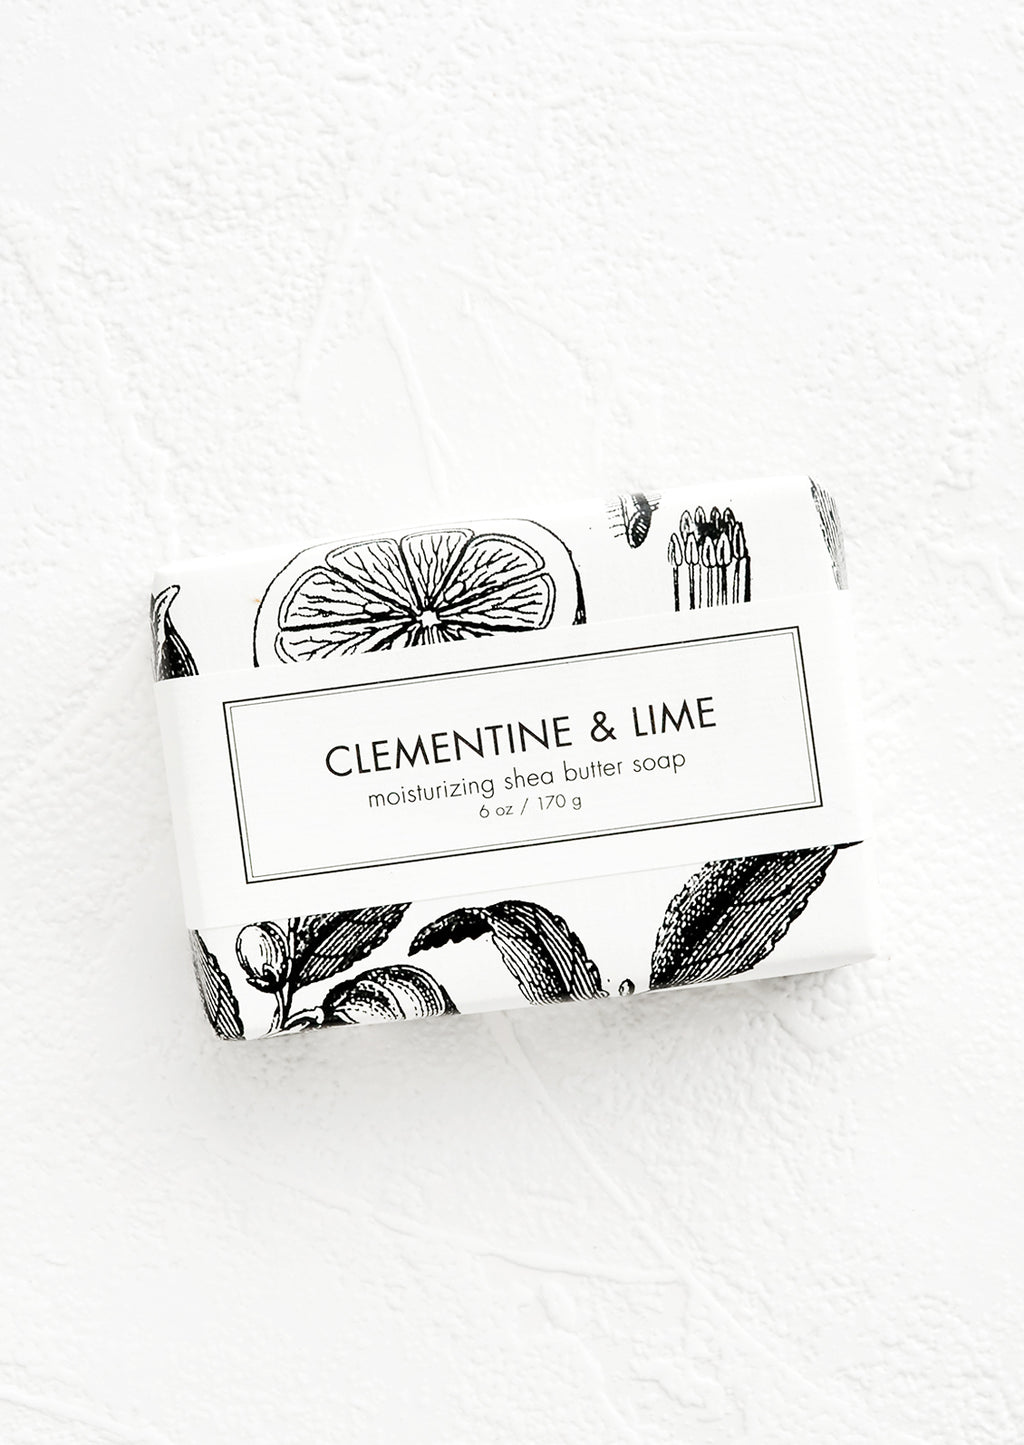 Clementine & Lime: A bar of soap in black & white botanical graphic packaging.